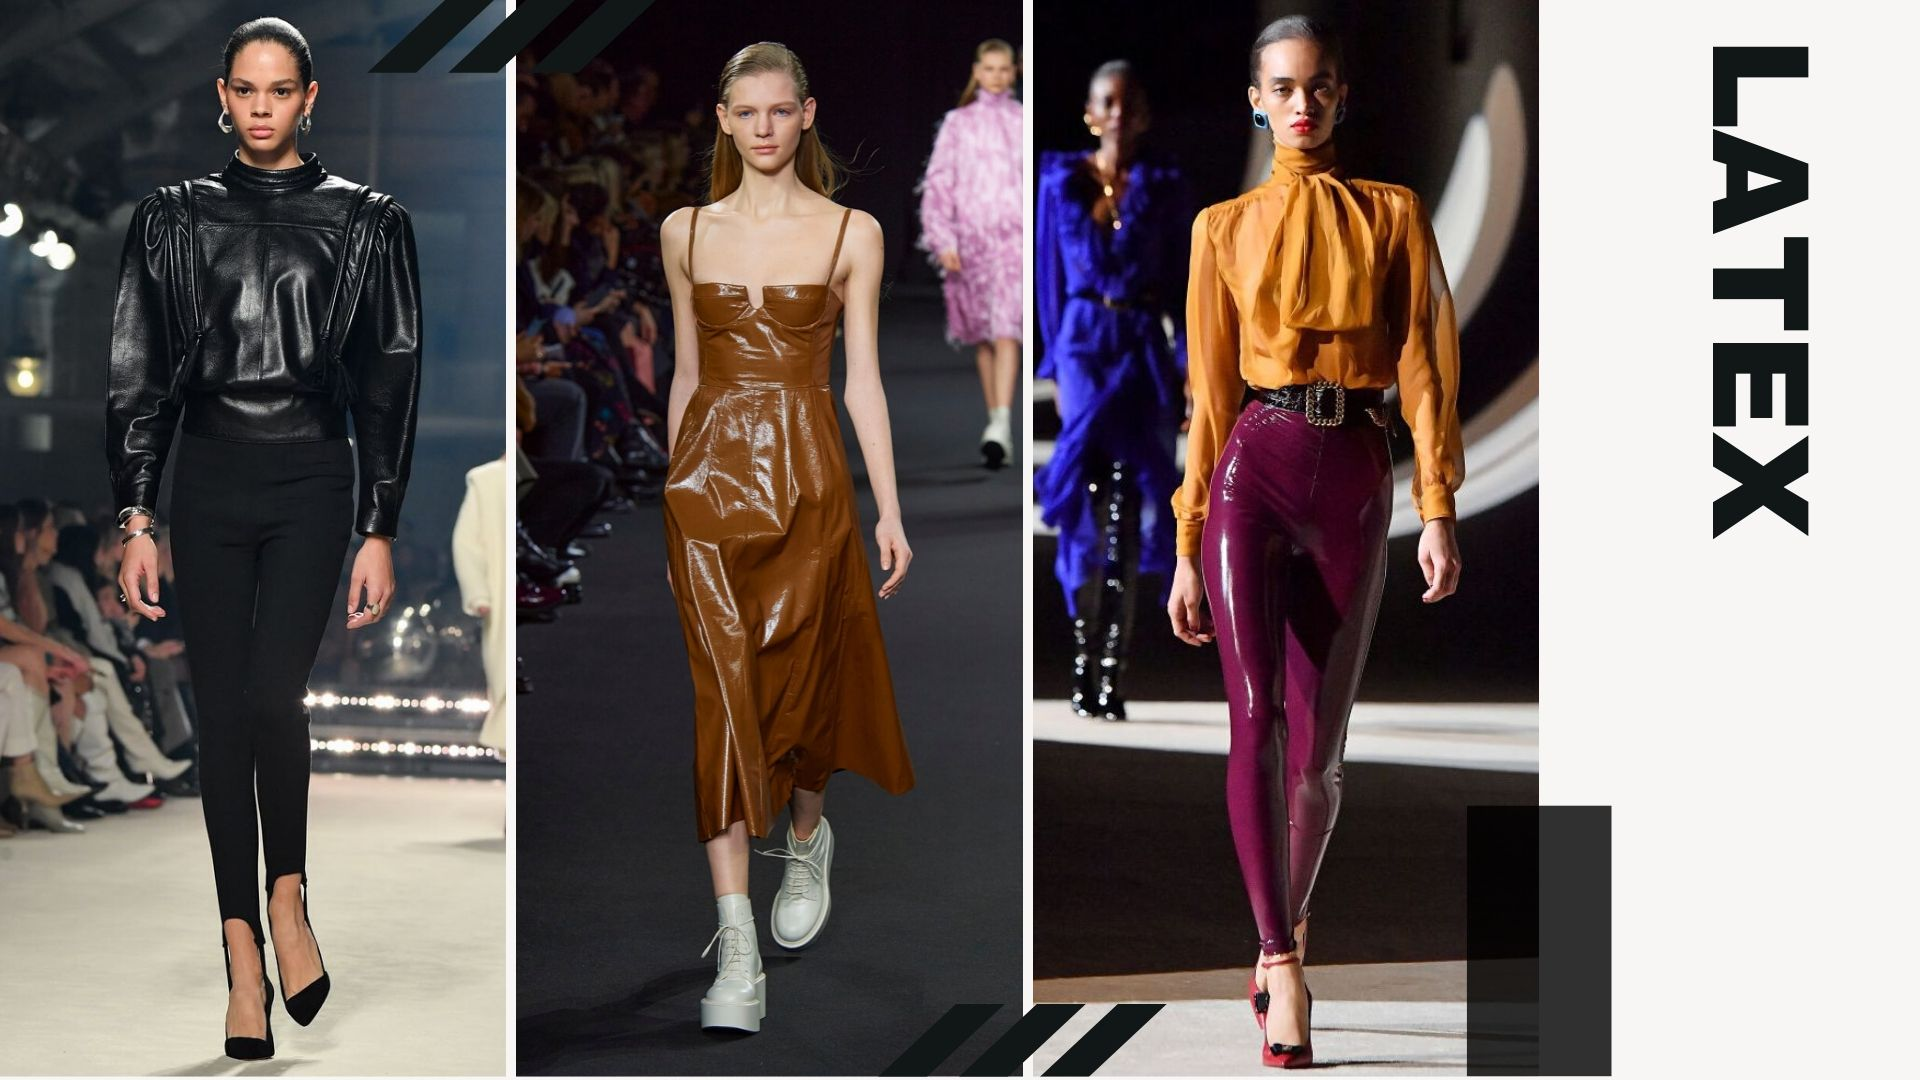 TOP 5 TRENDS FROM PFW F/W - Latex